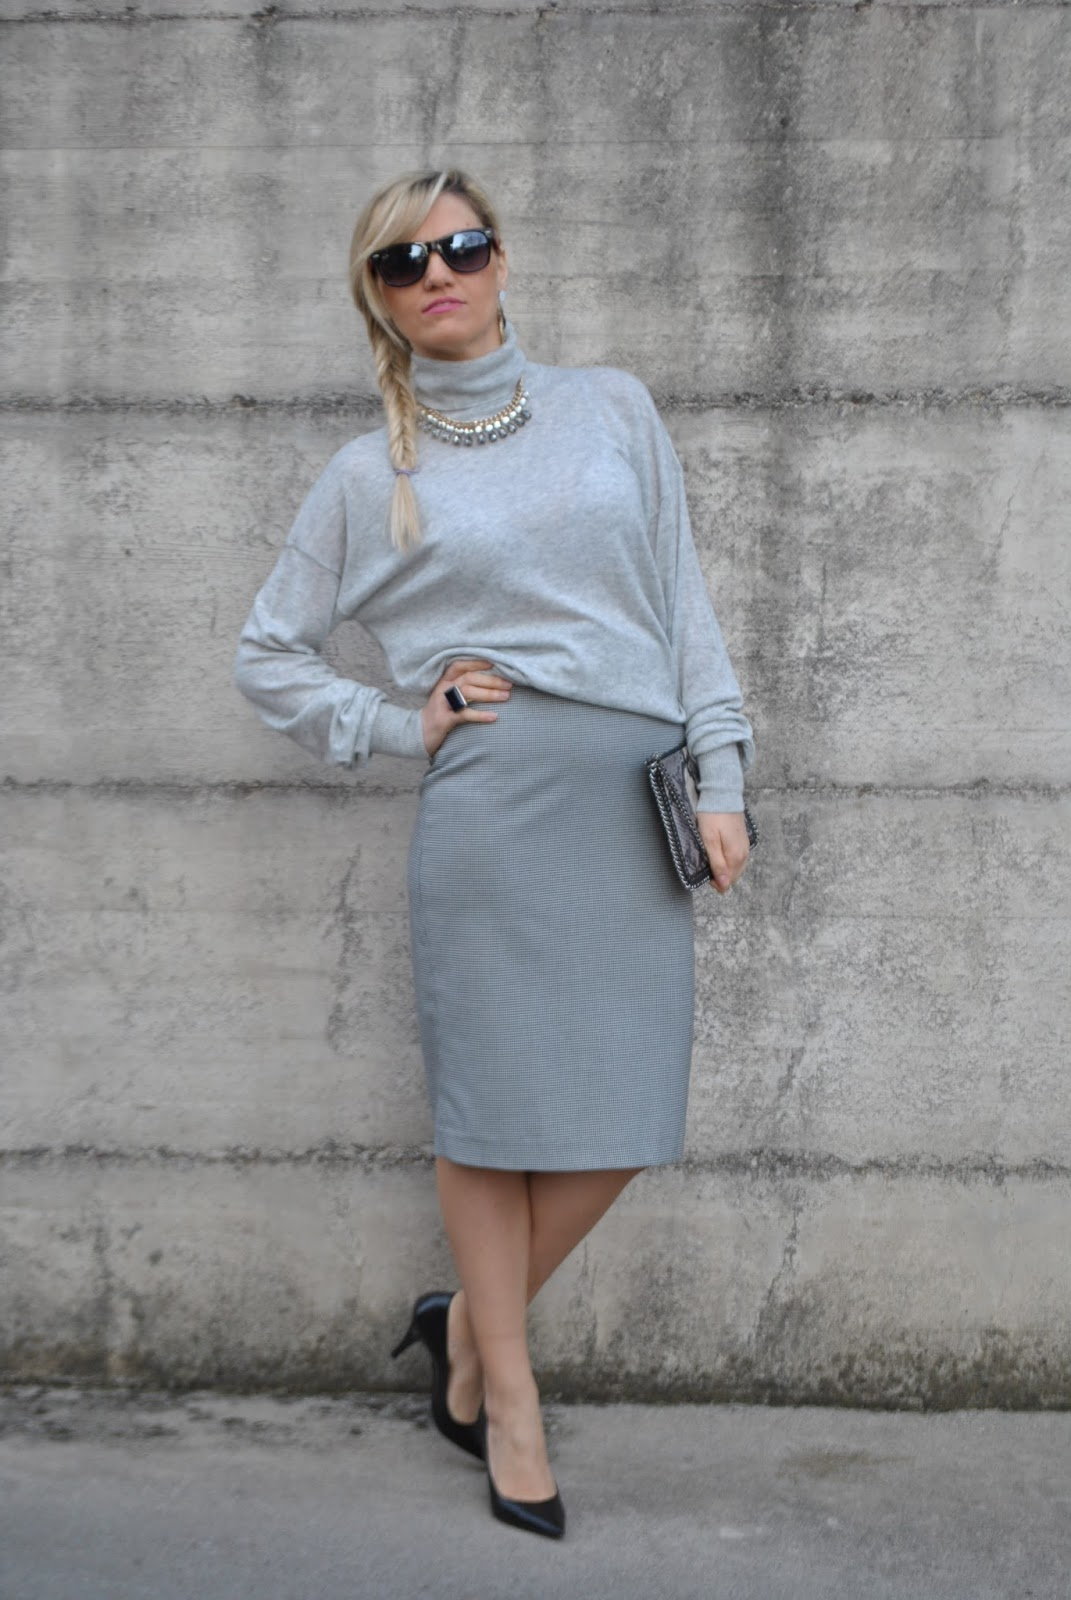 buy popular b9517 b434e Color-Block By FelyM.: OUTFIT: PENCIL SKIRT AND TURTLENECK ...